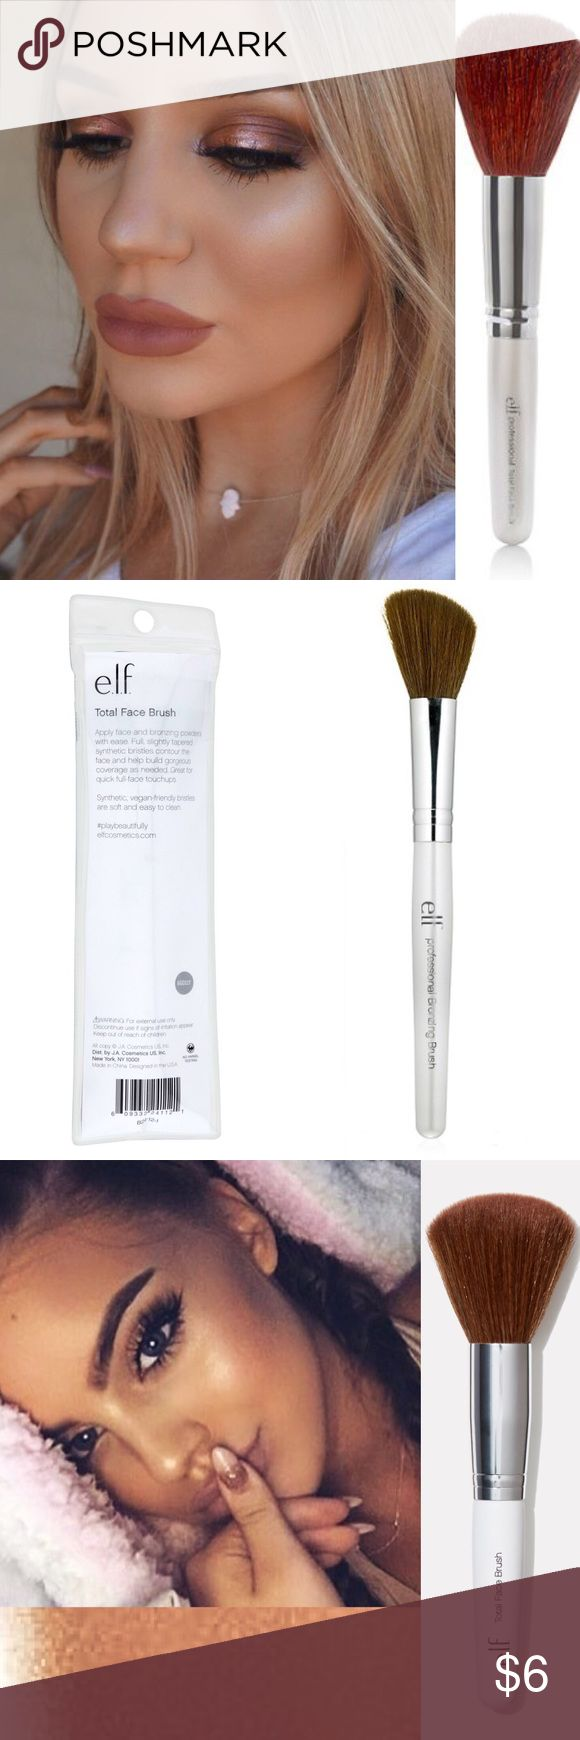 🔅E.L.F's *TOTAL FACE BRUSH*🔅W/GIFTS!🎁😍 🔅E.L.F COSMETICS🔅BRAND NEW & UNOPENED🔅INCREDIBLE ORDERS🔅SUPER FAST SHIPPING🔅INCLUDES BRAND NEW PRODUCT & UR FAVORITES PICKED OUT!🔅This synthetic haired Brush is soft, absorbent, & can be used with BOTH wet & dry products!! For best results, clean or wipe brush after each use! (ASK FOR BRUSH CLEANER SOLD SEPARATELY)🔅EXPEDITED SHIPPING🔅BUNDLE ONLY 3 ITEMS FOR AN *ADDITIONAL* 15% OFF OR PICK 2 FOR AN *EXTRA* 10% OFF NOW🔅ASK ME FOR SOLD…